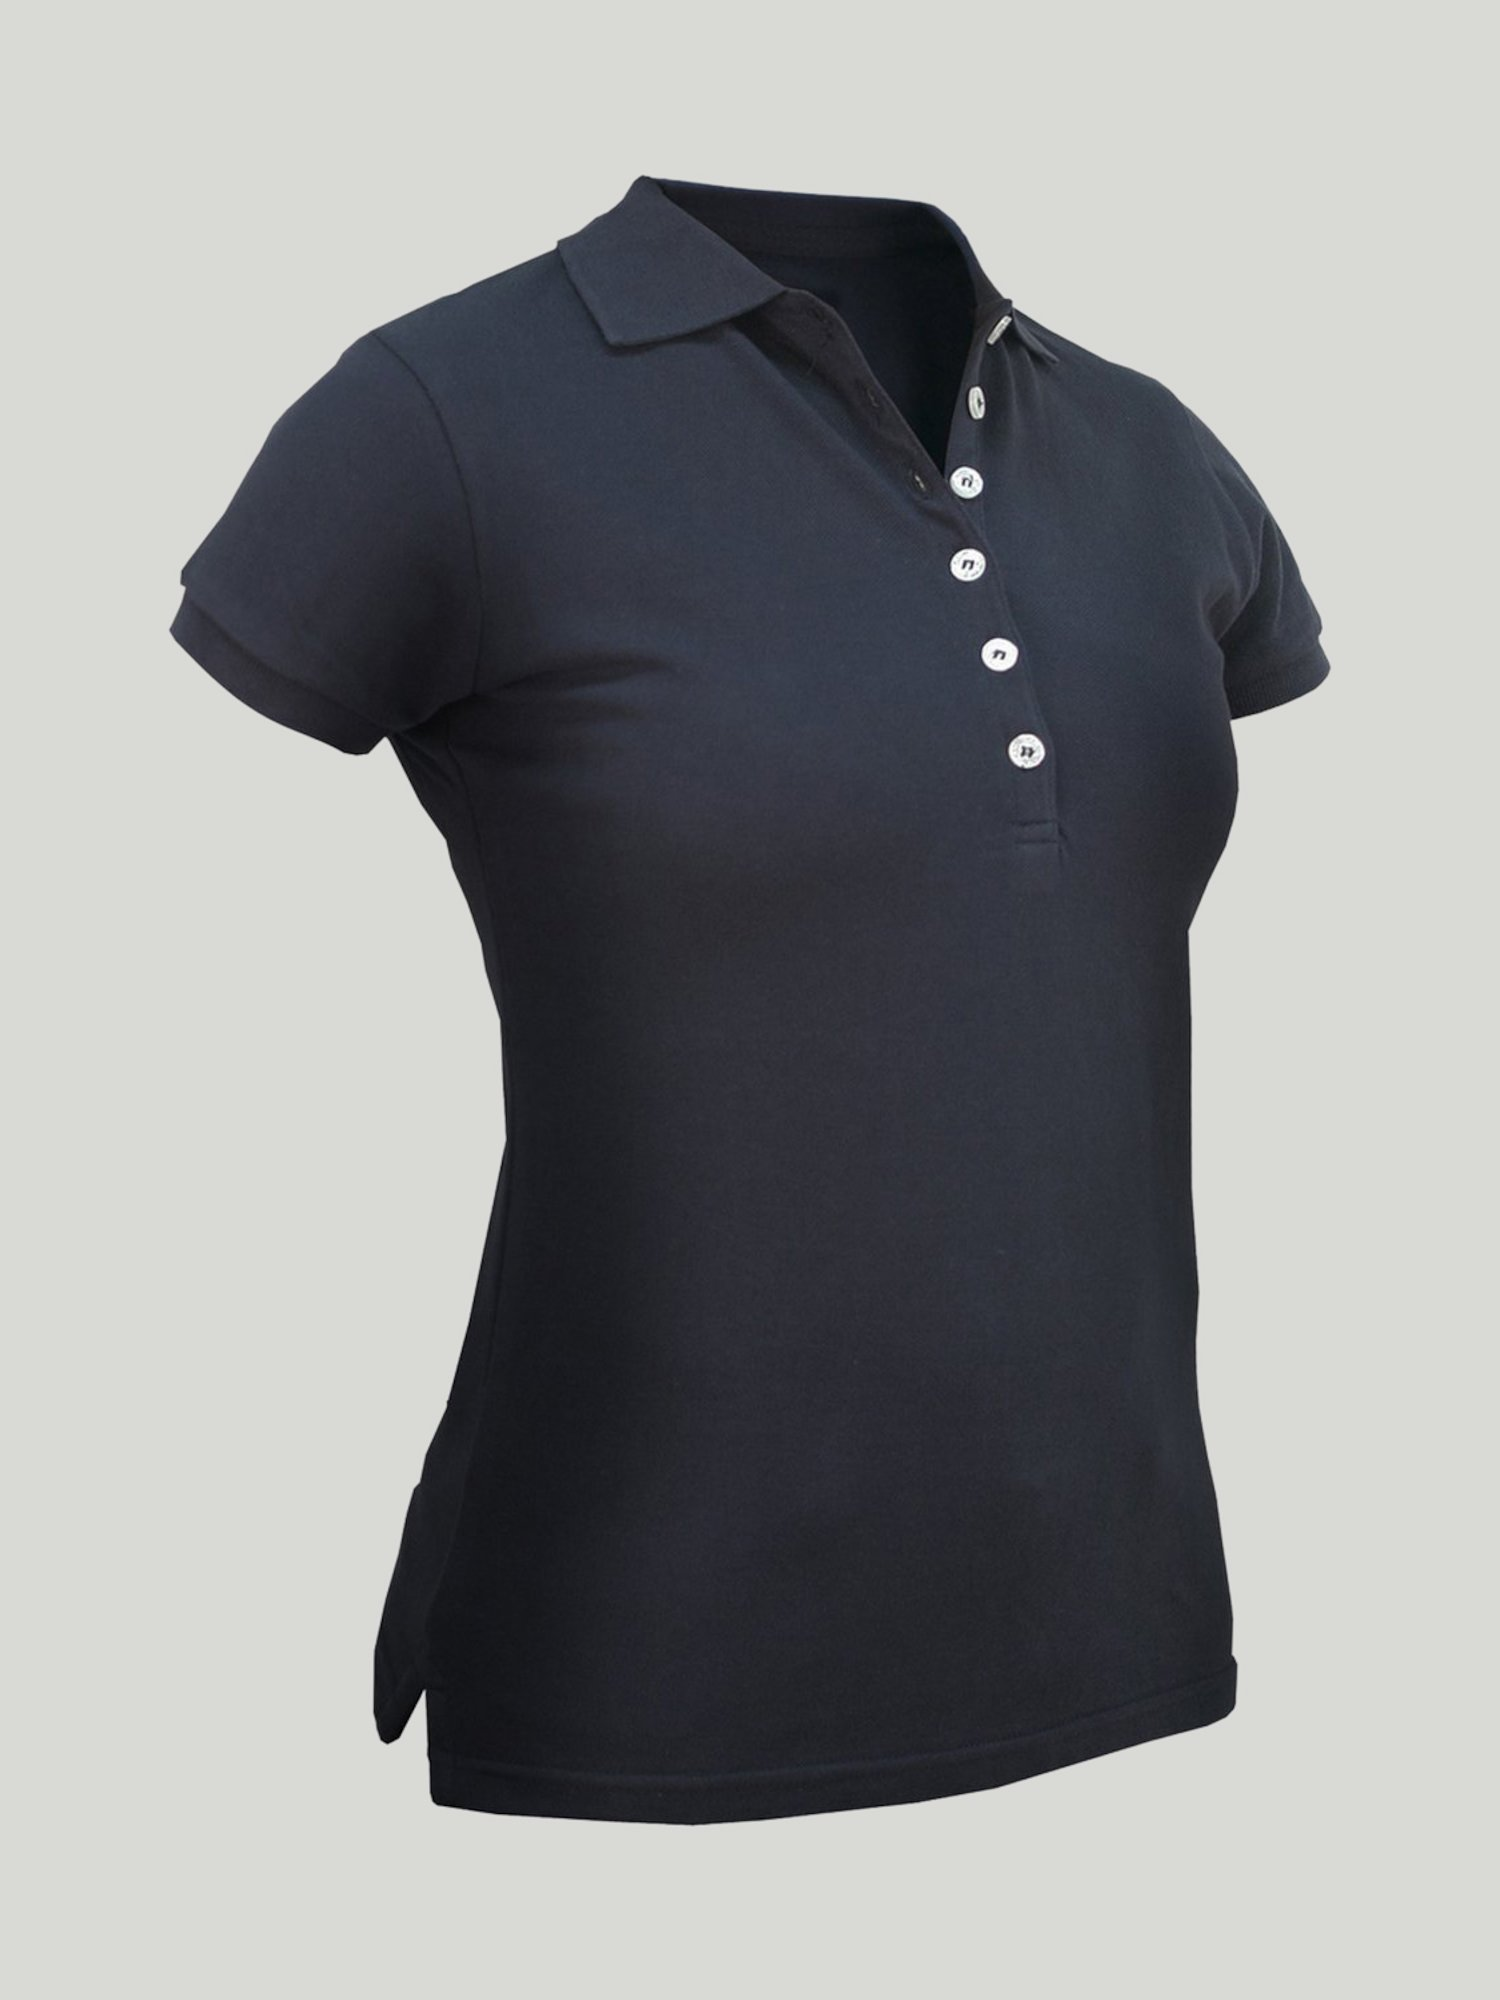 Roseland Ss New polo shirt - Navy